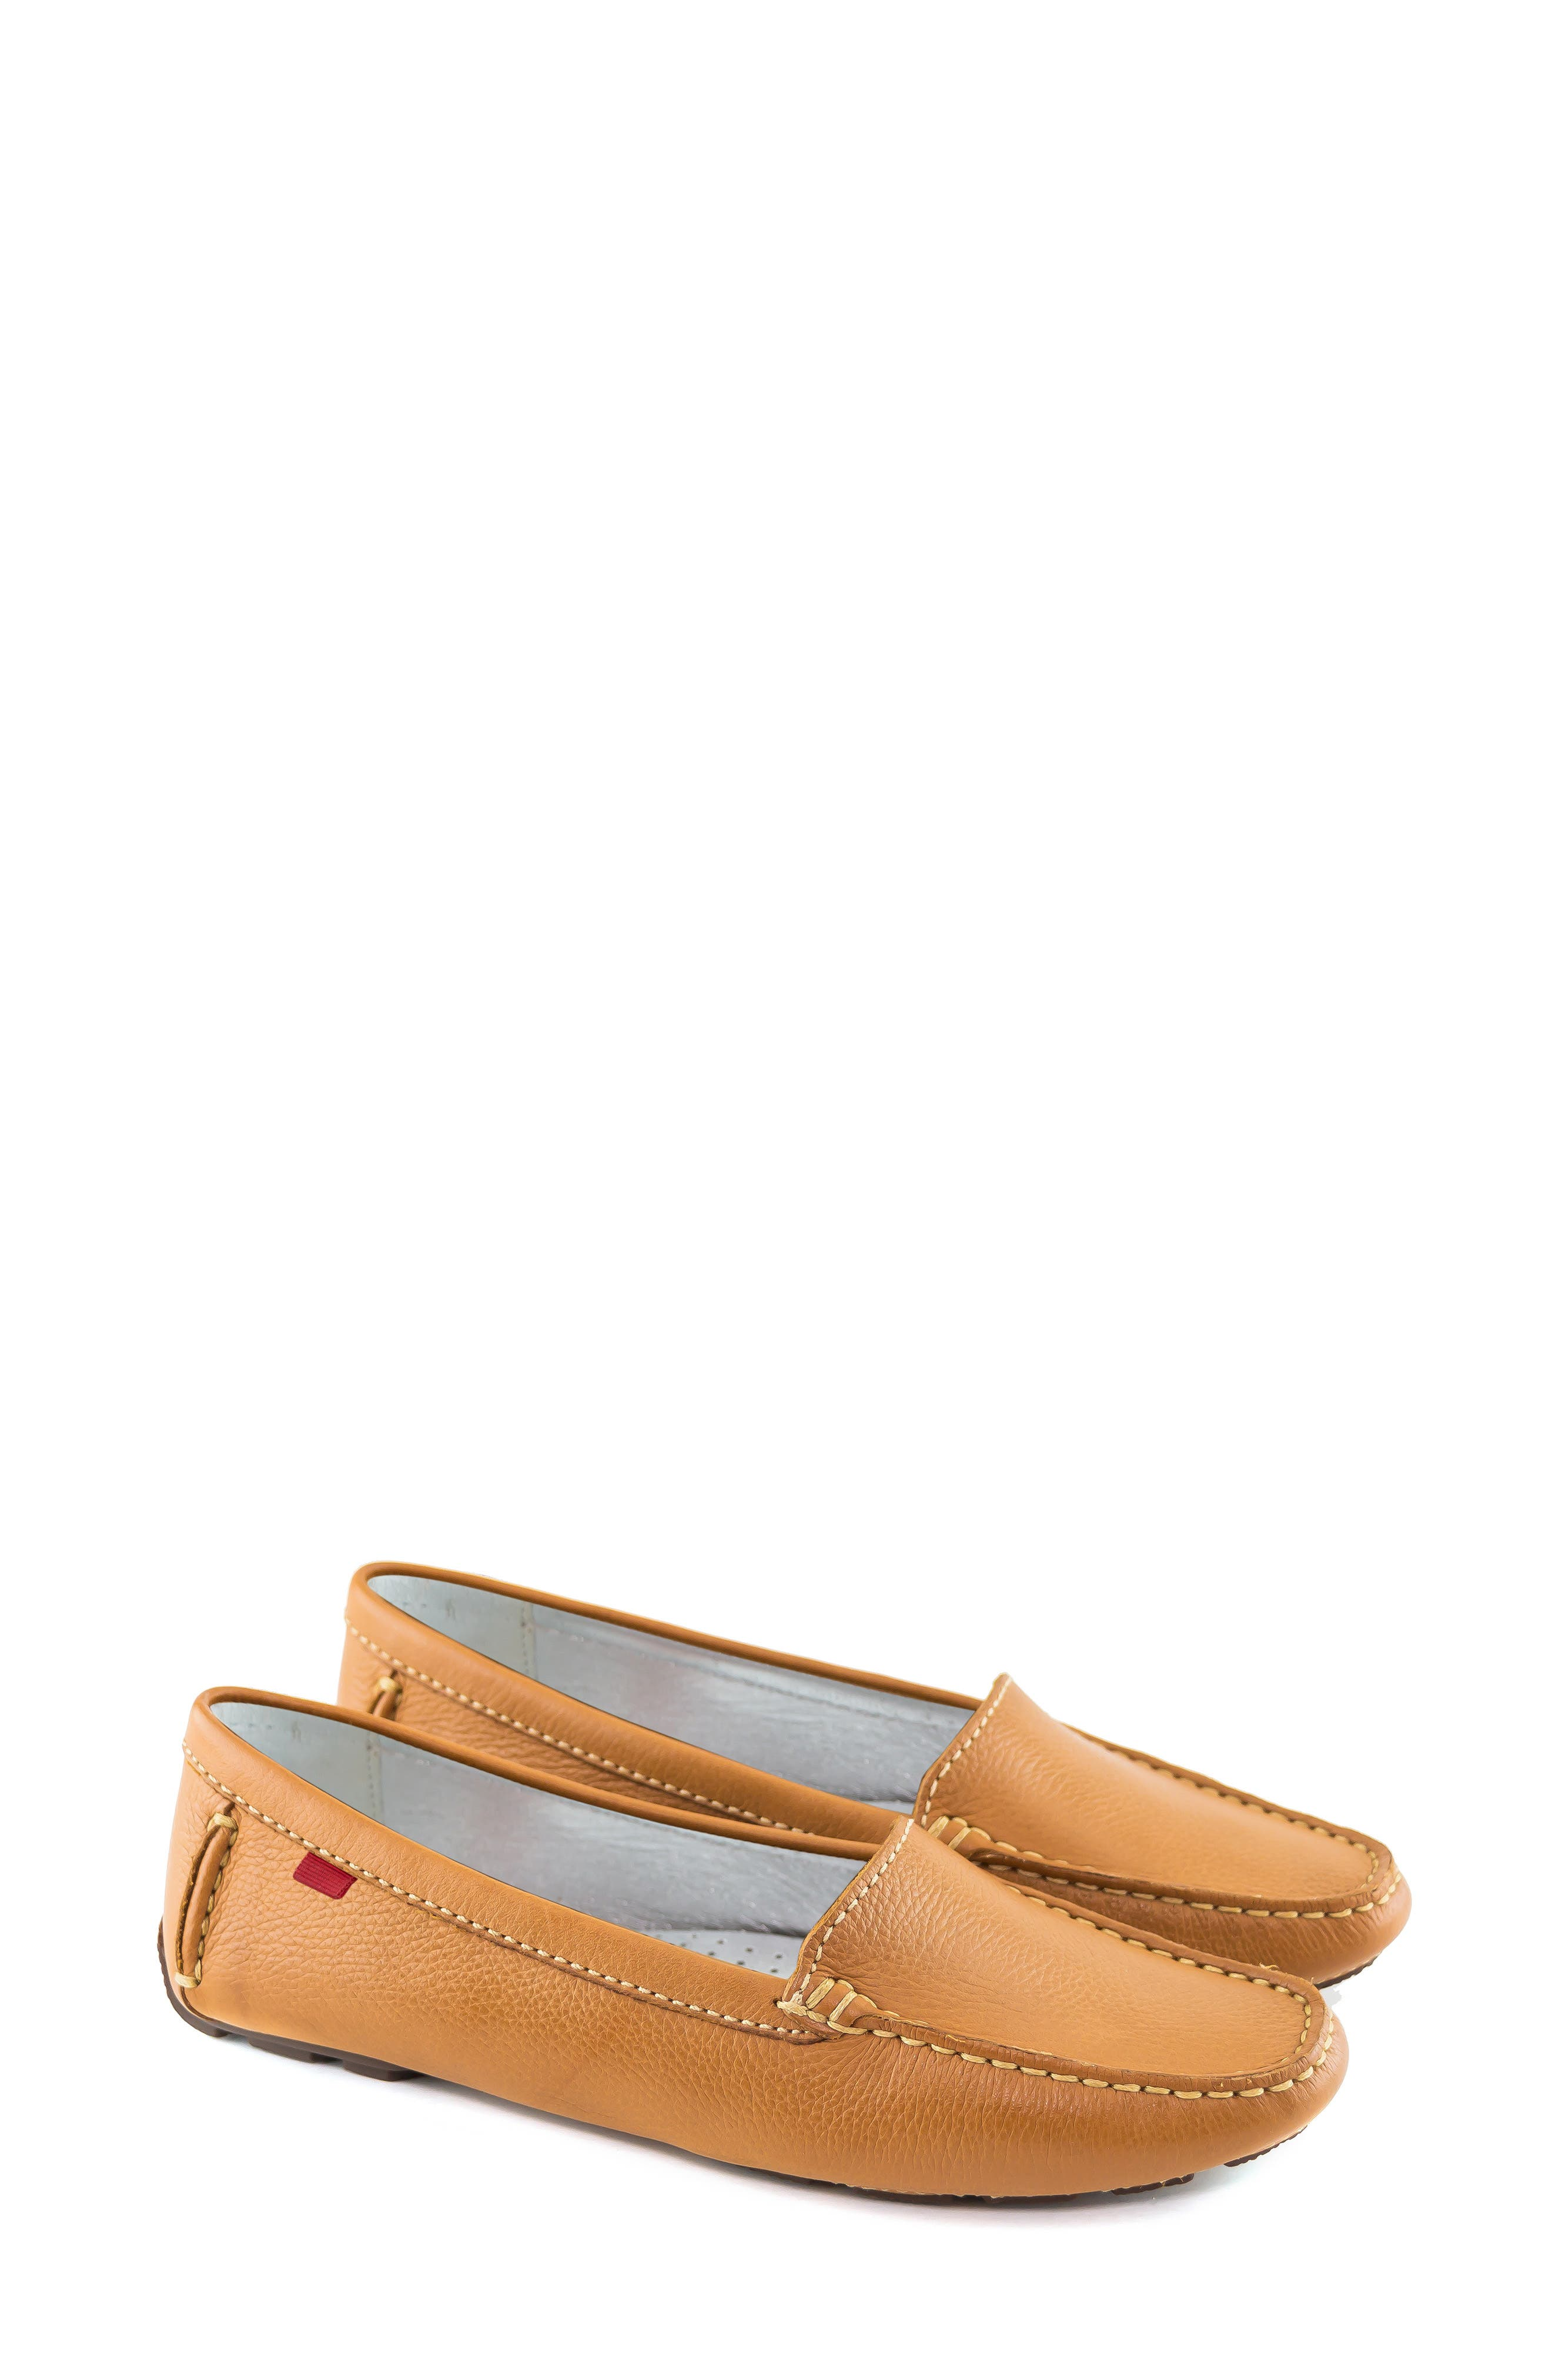 MARC JOSEPH NEW YORK, Manhasset Loafer, Alternate thumbnail 6, color, TAN/ NATURAL LEATHER